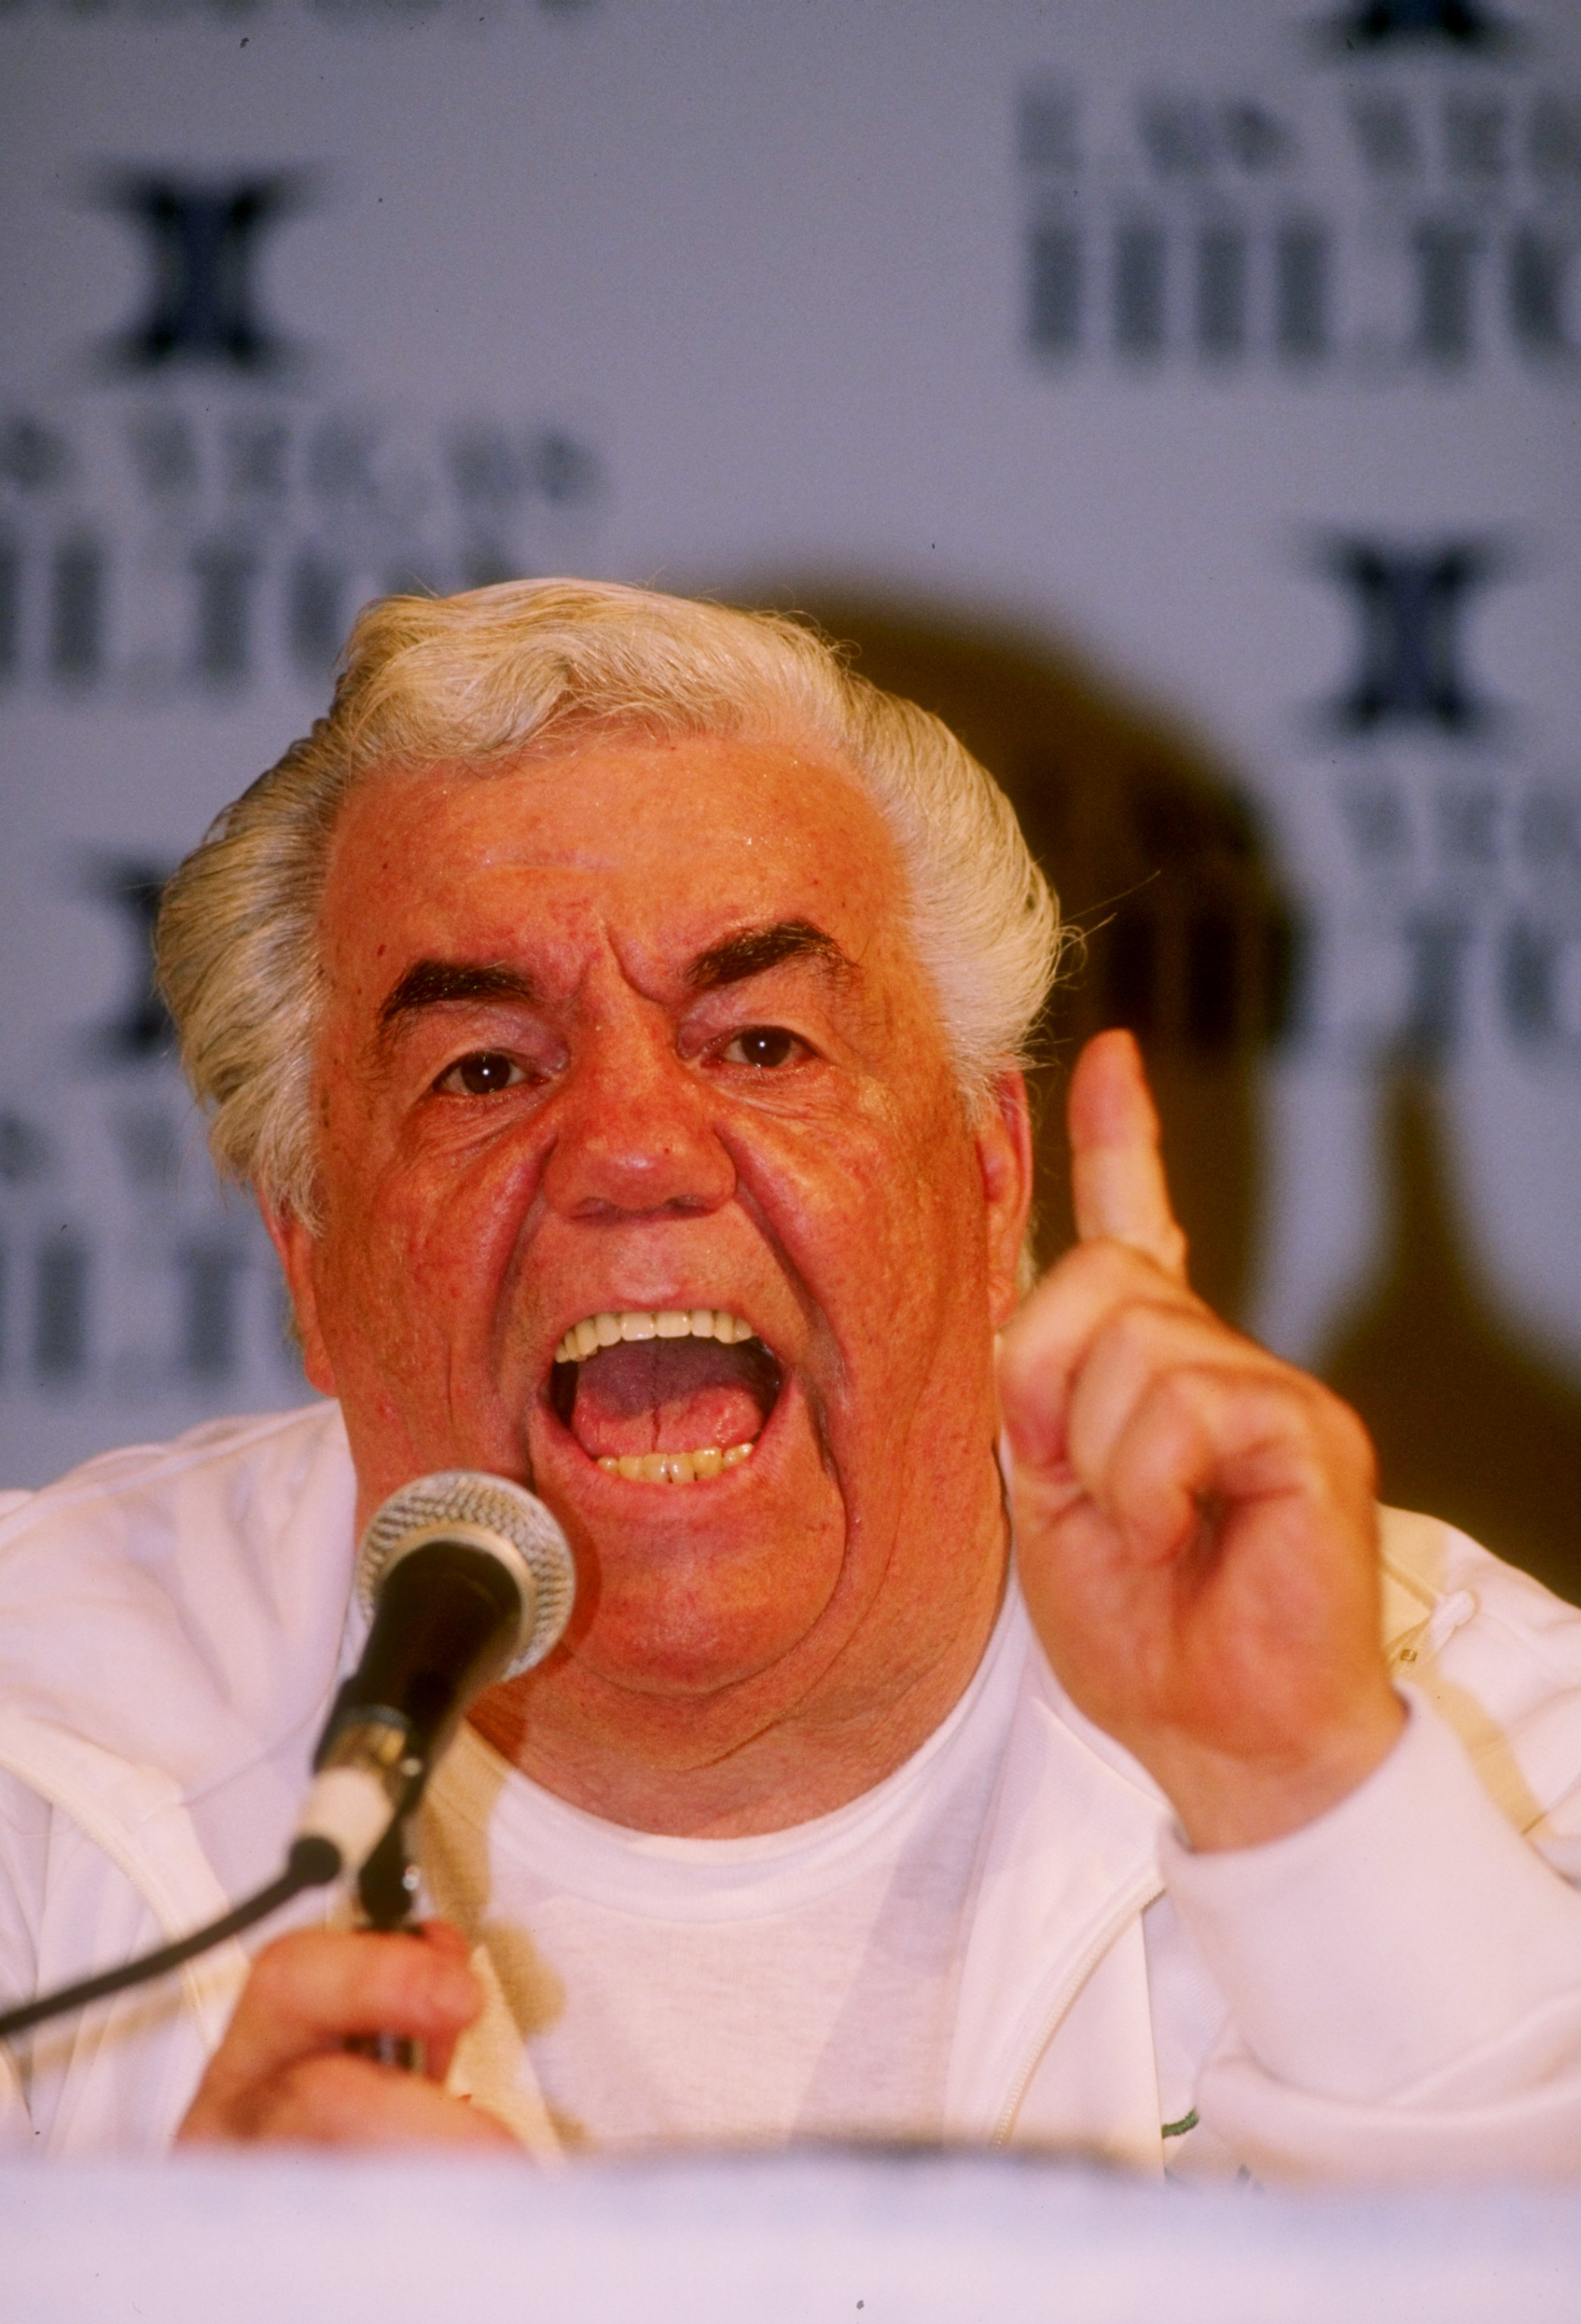 17 Mar 1990: Trainer Lou Duva shouts into a microphone during a press conference regarding his fighter Meldrick Taylor.